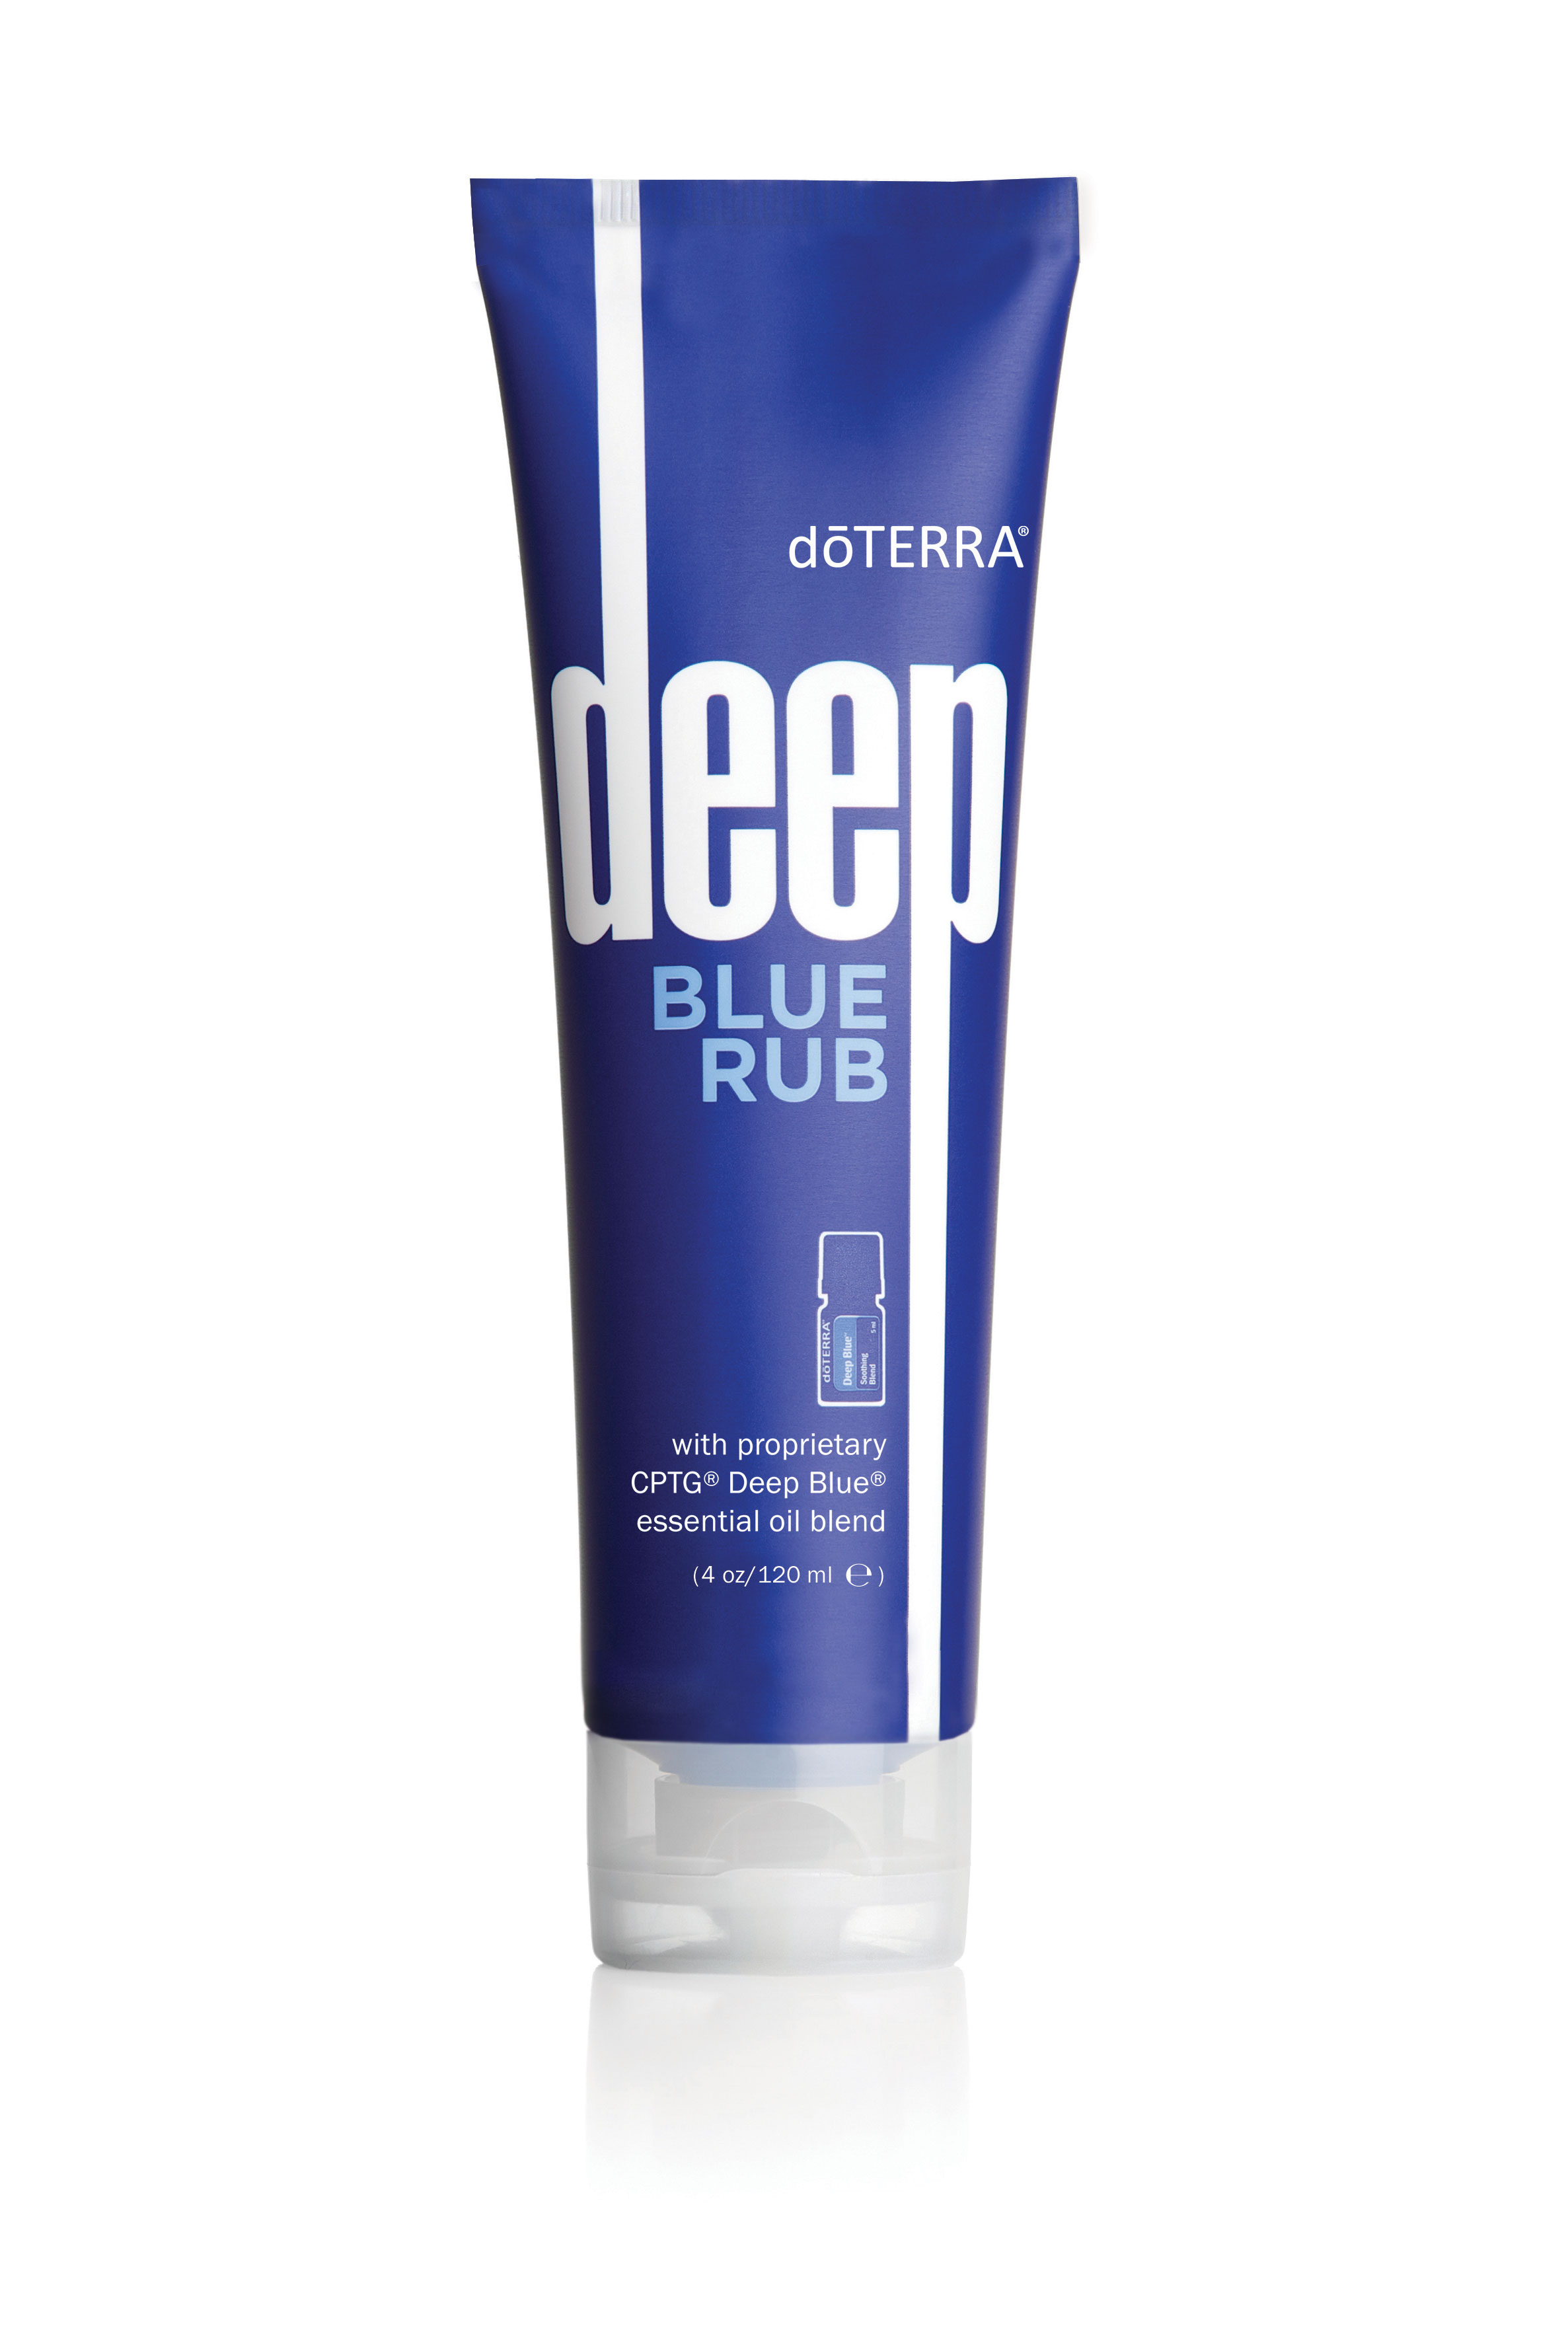 doTERRA®Deep Blue Rub is a topical cream formulated with Deep Blue Soothing Blend of CPTG Certified Pure Therapeutic Grade®essential oils, natural plant extracts, and additional helpful ingredients that provides a comforting sensation of cooling and warmth to problem areas. -